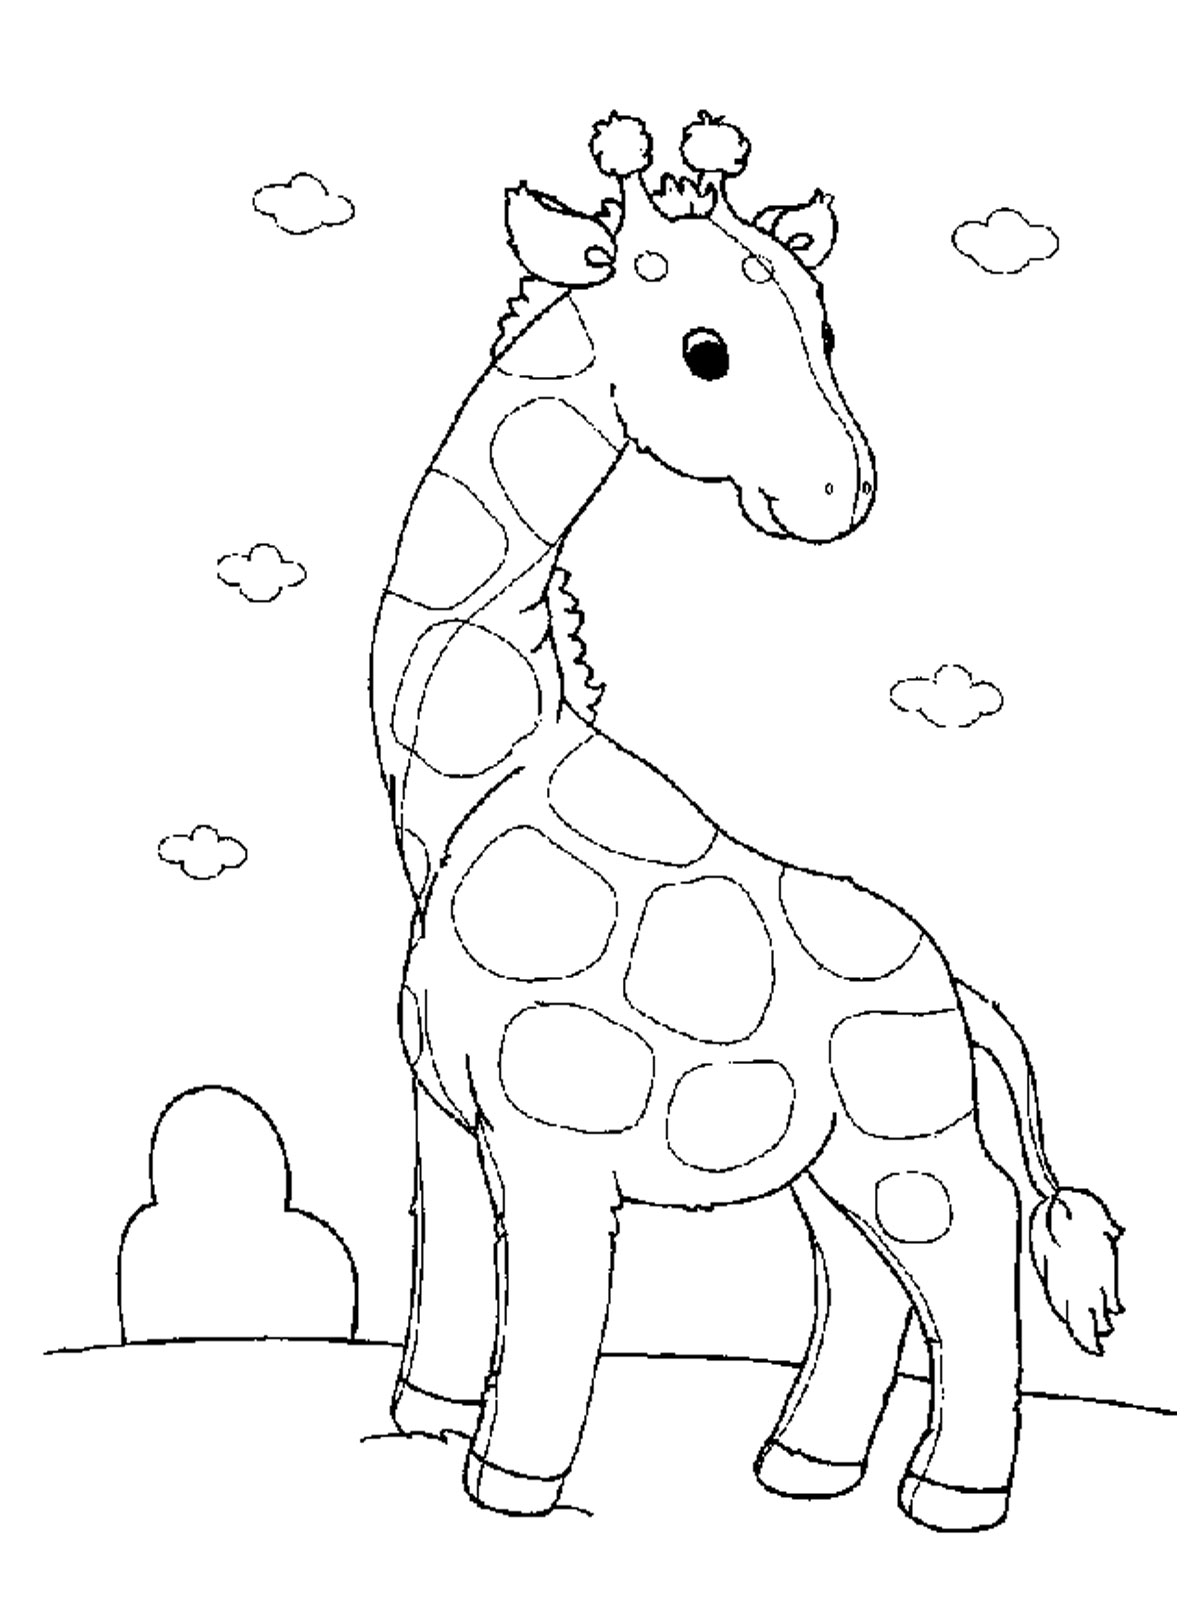 baby animal coloring pages realistic coloring pages. Black Bedroom Furniture Sets. Home Design Ideas